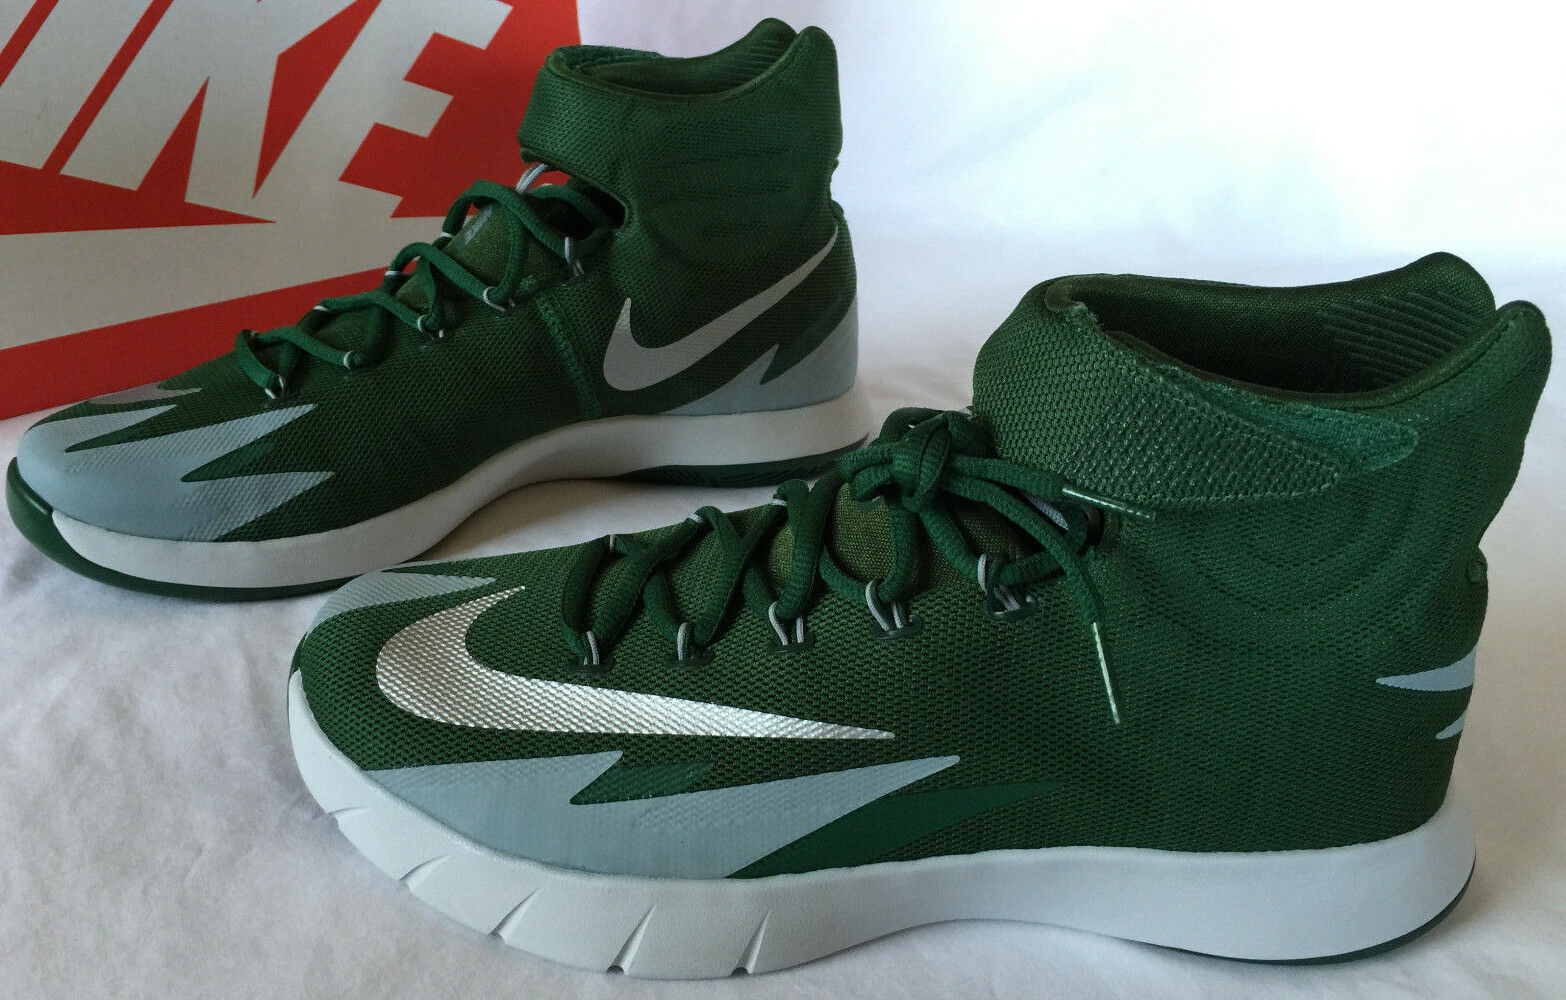 0a163ac95f9 Nike Zoom Hyperrev Kyrie Erving 643301-300 Green Basketball Shoes ...